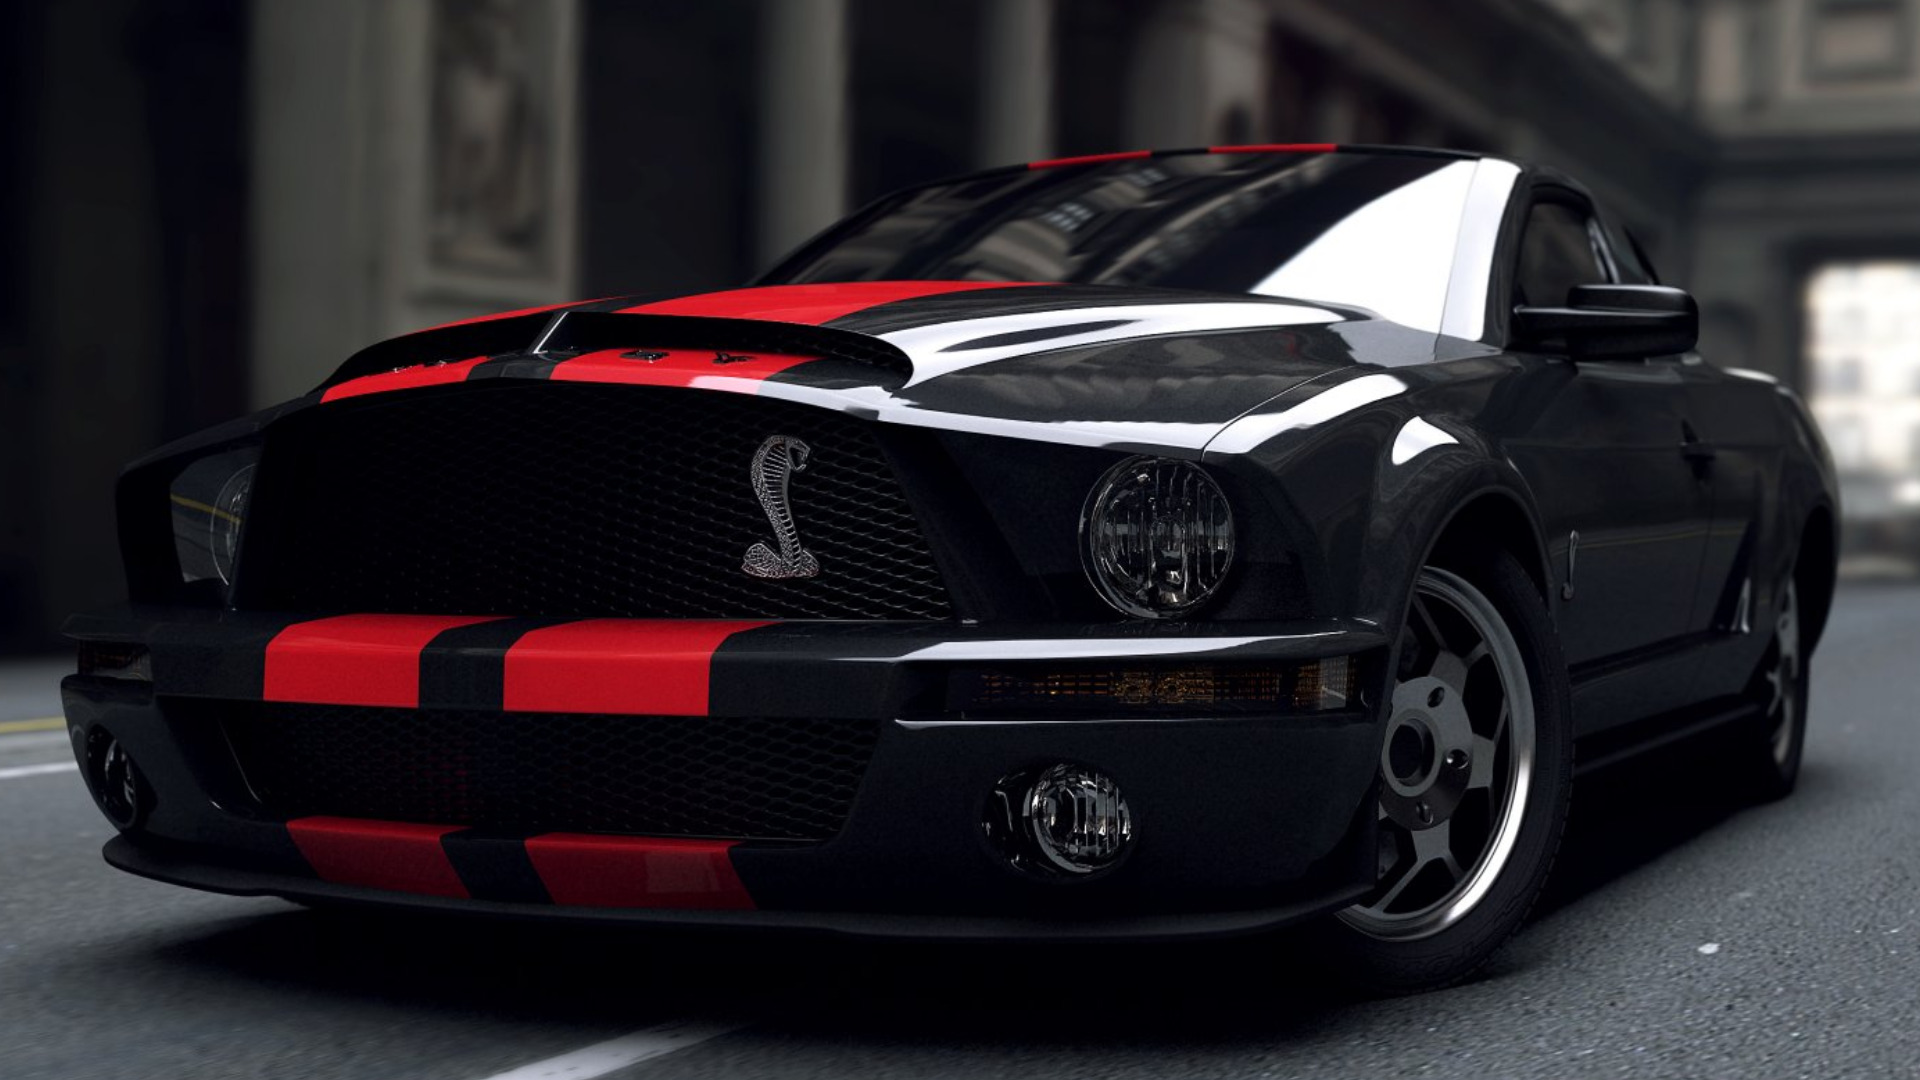 Shelby Fp S Is A Mustang Fit For Trans Am Nasa And Scca Racing as well Maxresdefault in addition Maxresdefault further Lincoln Zephyr V Car also D Sedan Car Mustang Web Slide. on 2017 ford mustang shelby gt350